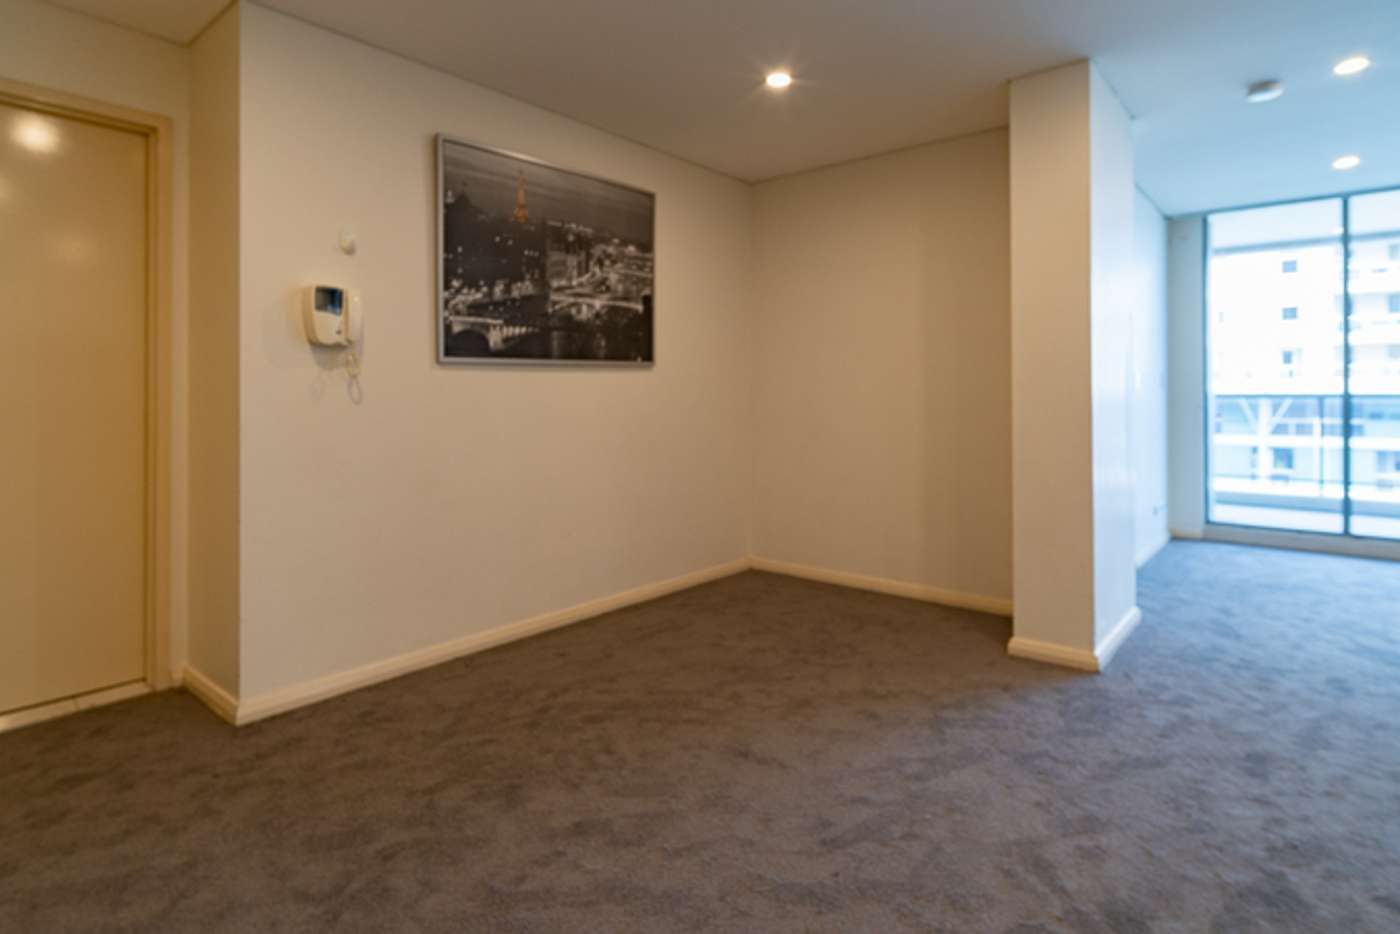 Seventh view of Homely apartment listing, 1106/6 Lachlan Street, Waterloo NSW 2017